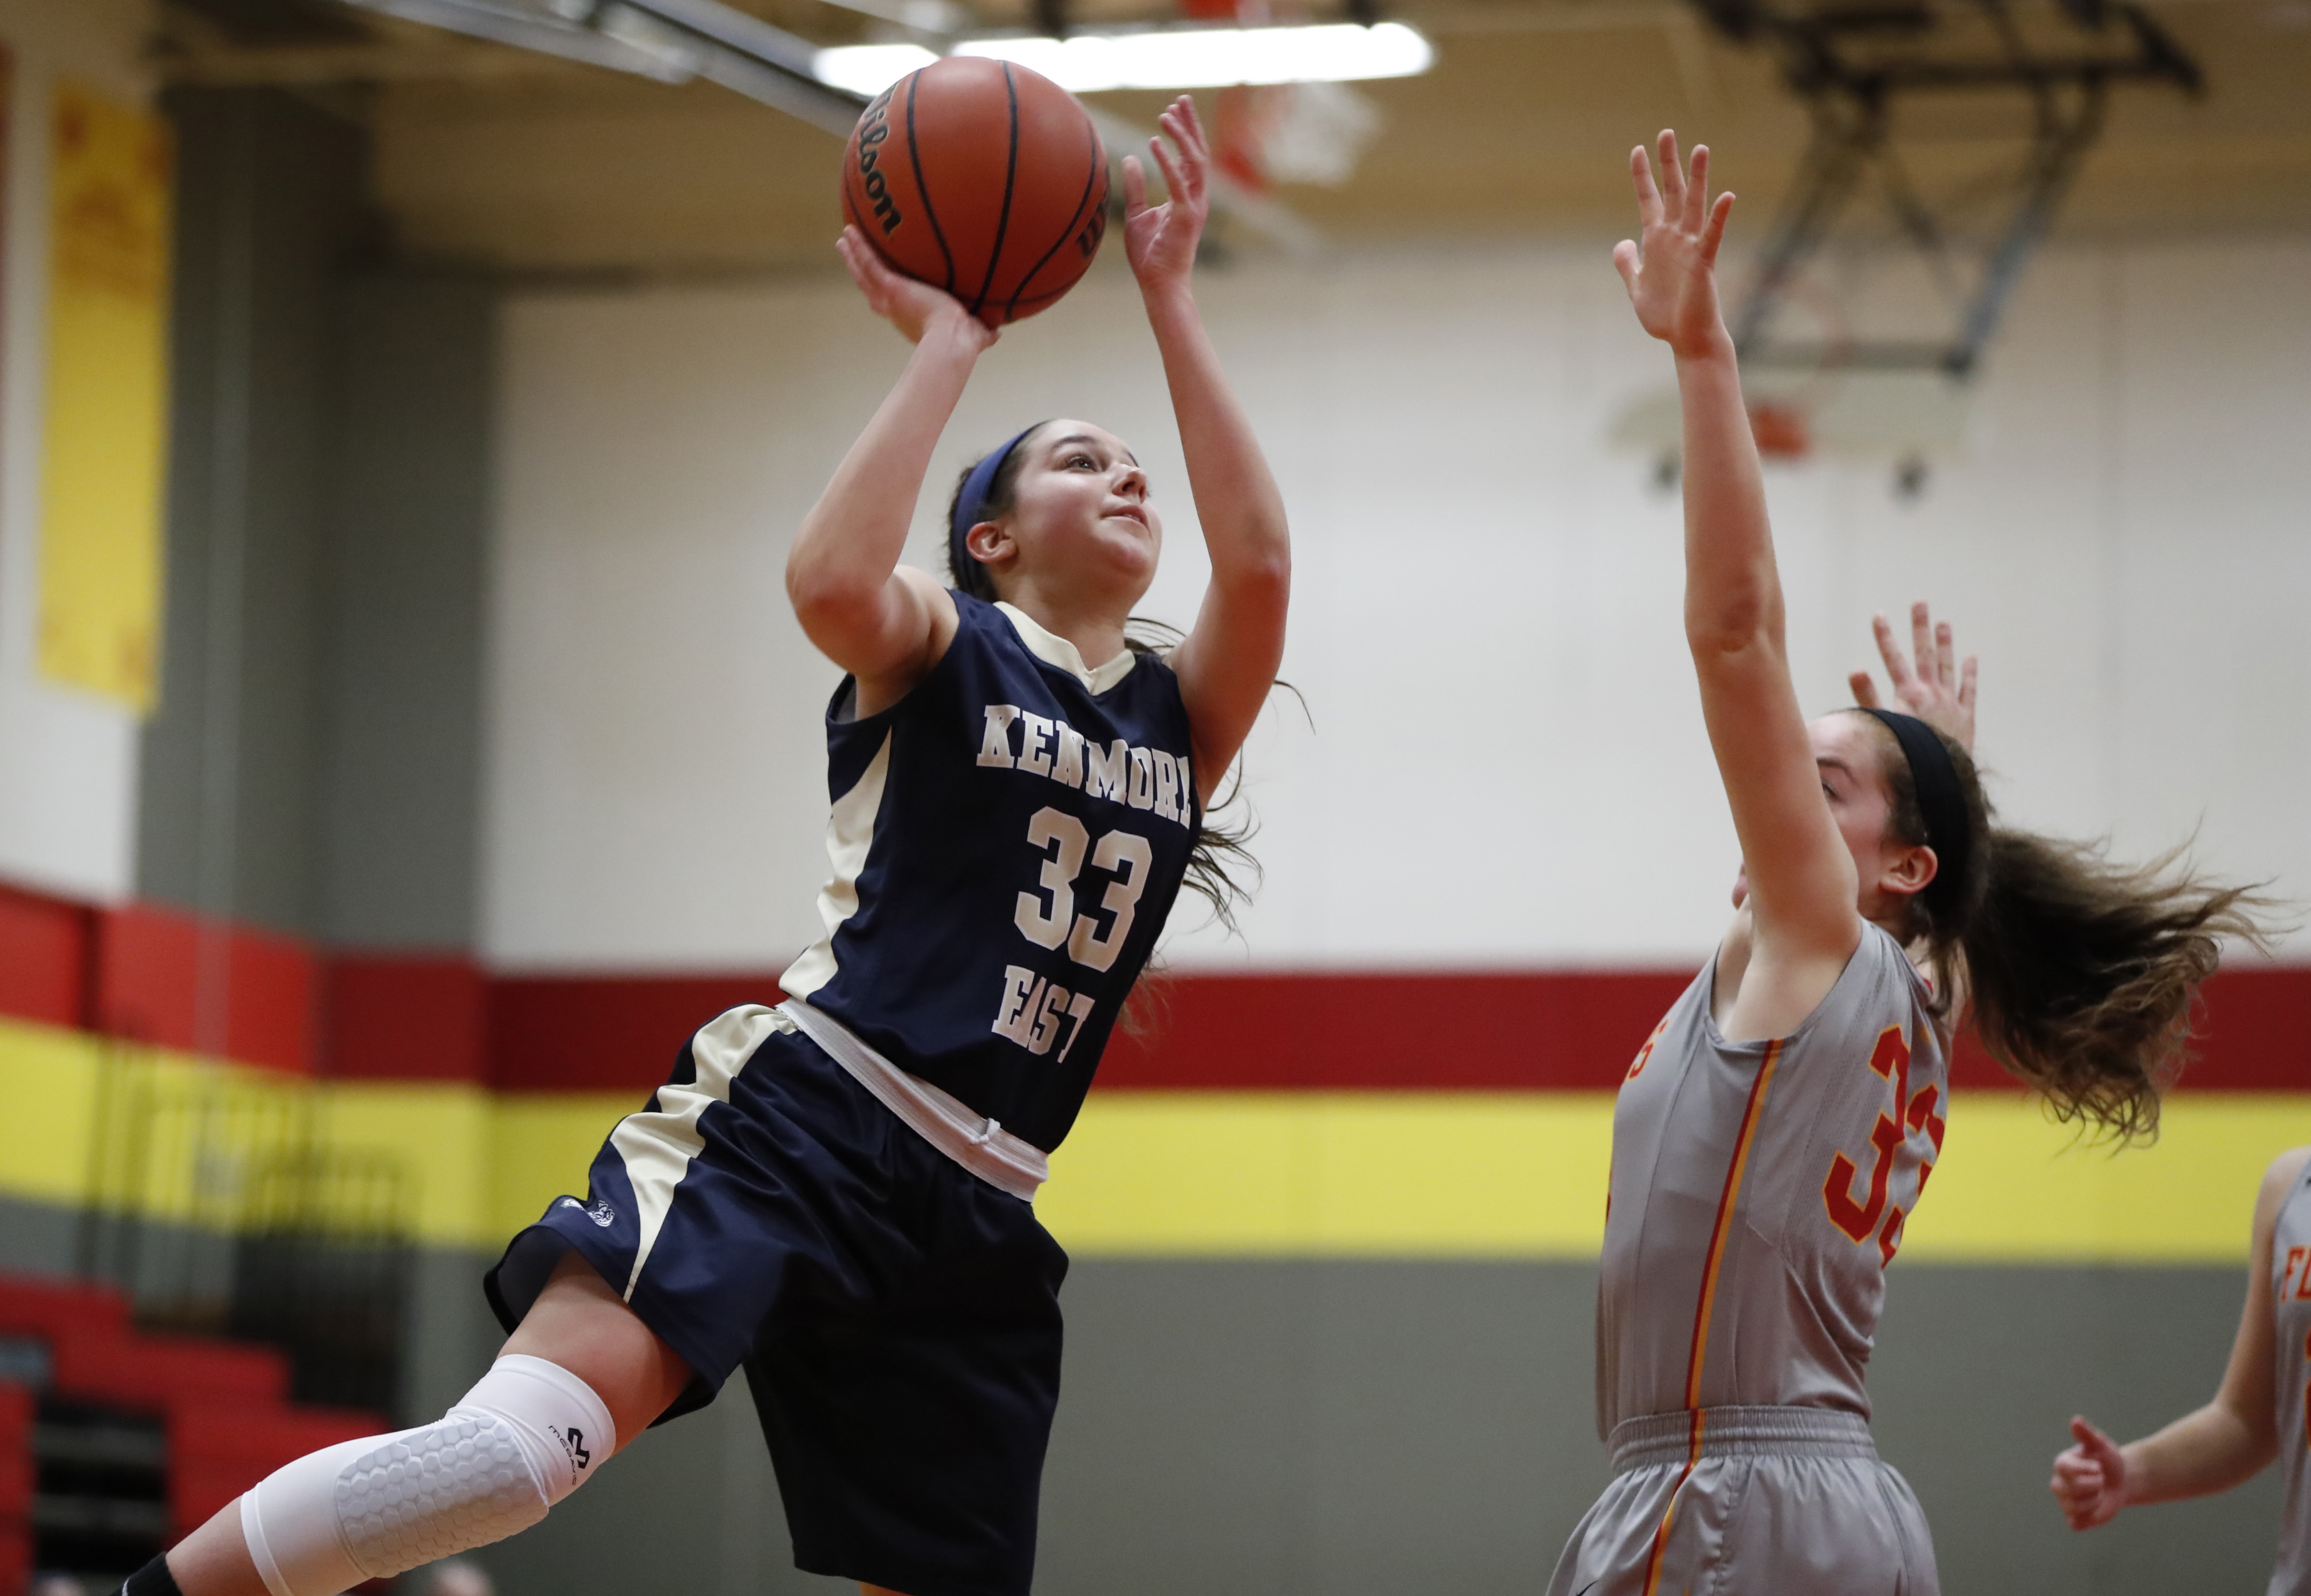 WIlliamsville East's Rachel Romanowski defends Kenmore East's Kendall Mills during first half action Wednesday. (Harry Scull Jr./Buffalo News)